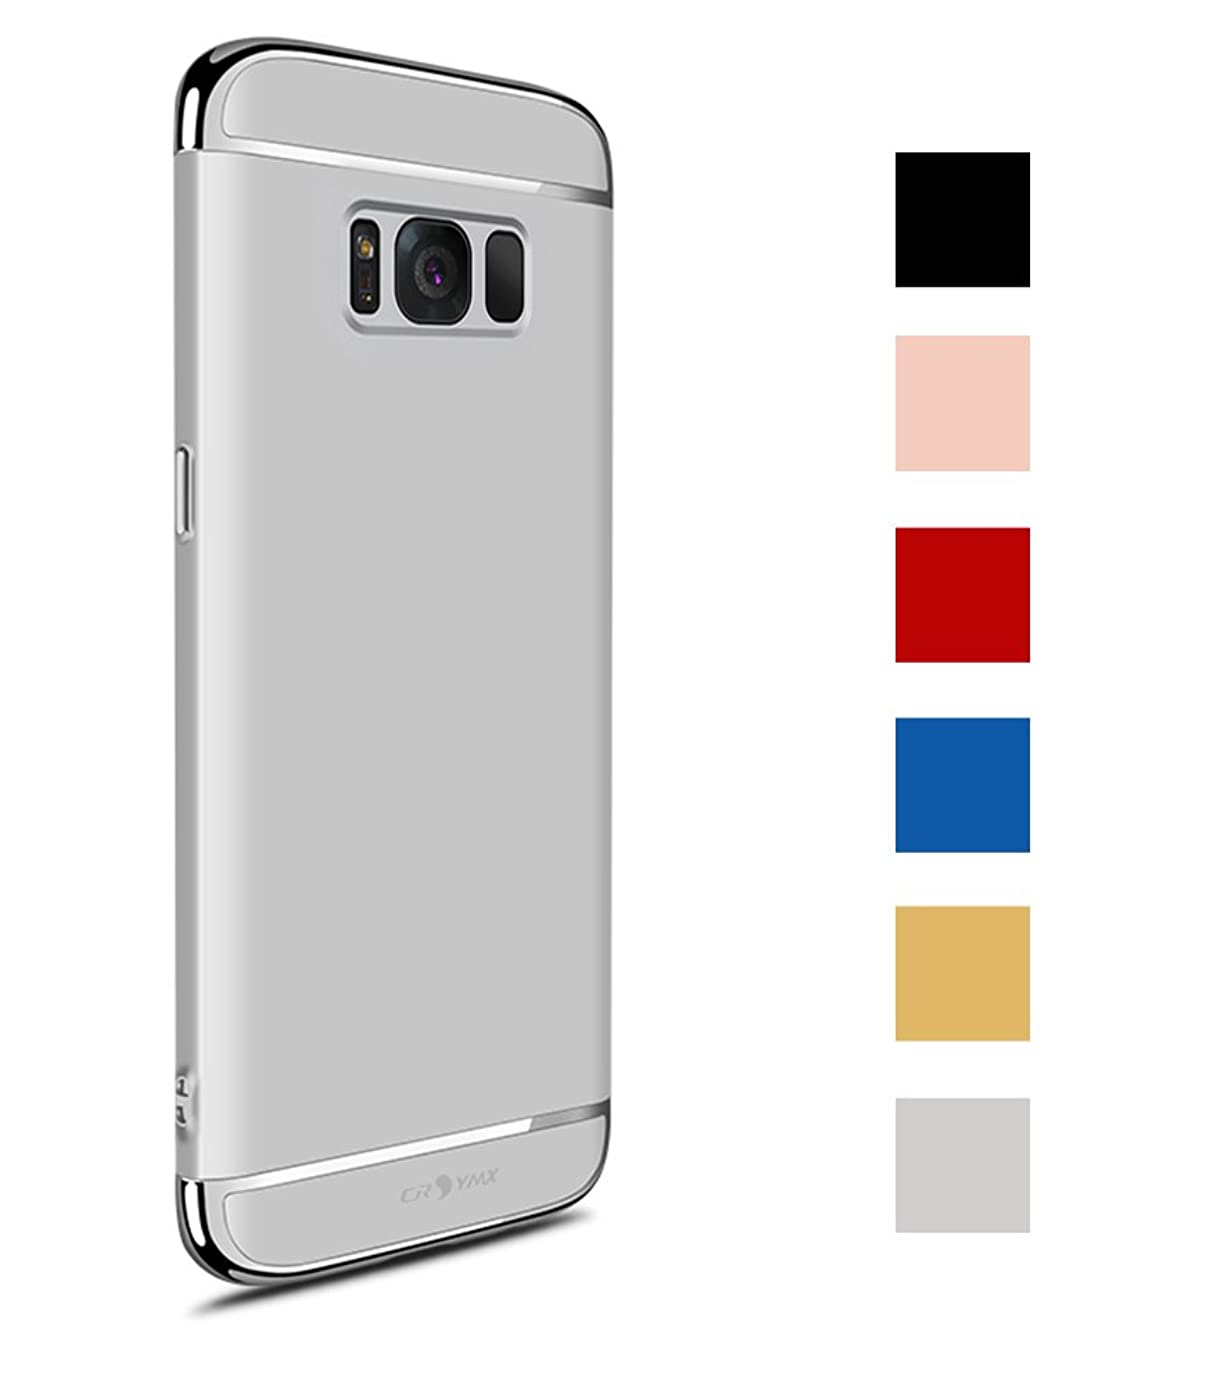 Galaxy S8 Plus Case, Thin and Slim Hard 3 in 1 Stylish Cover Matte Surface with Electroplate Frame Back Cover for Samsung Galaxy S8 Plus (6.2'')(2017) - Silver